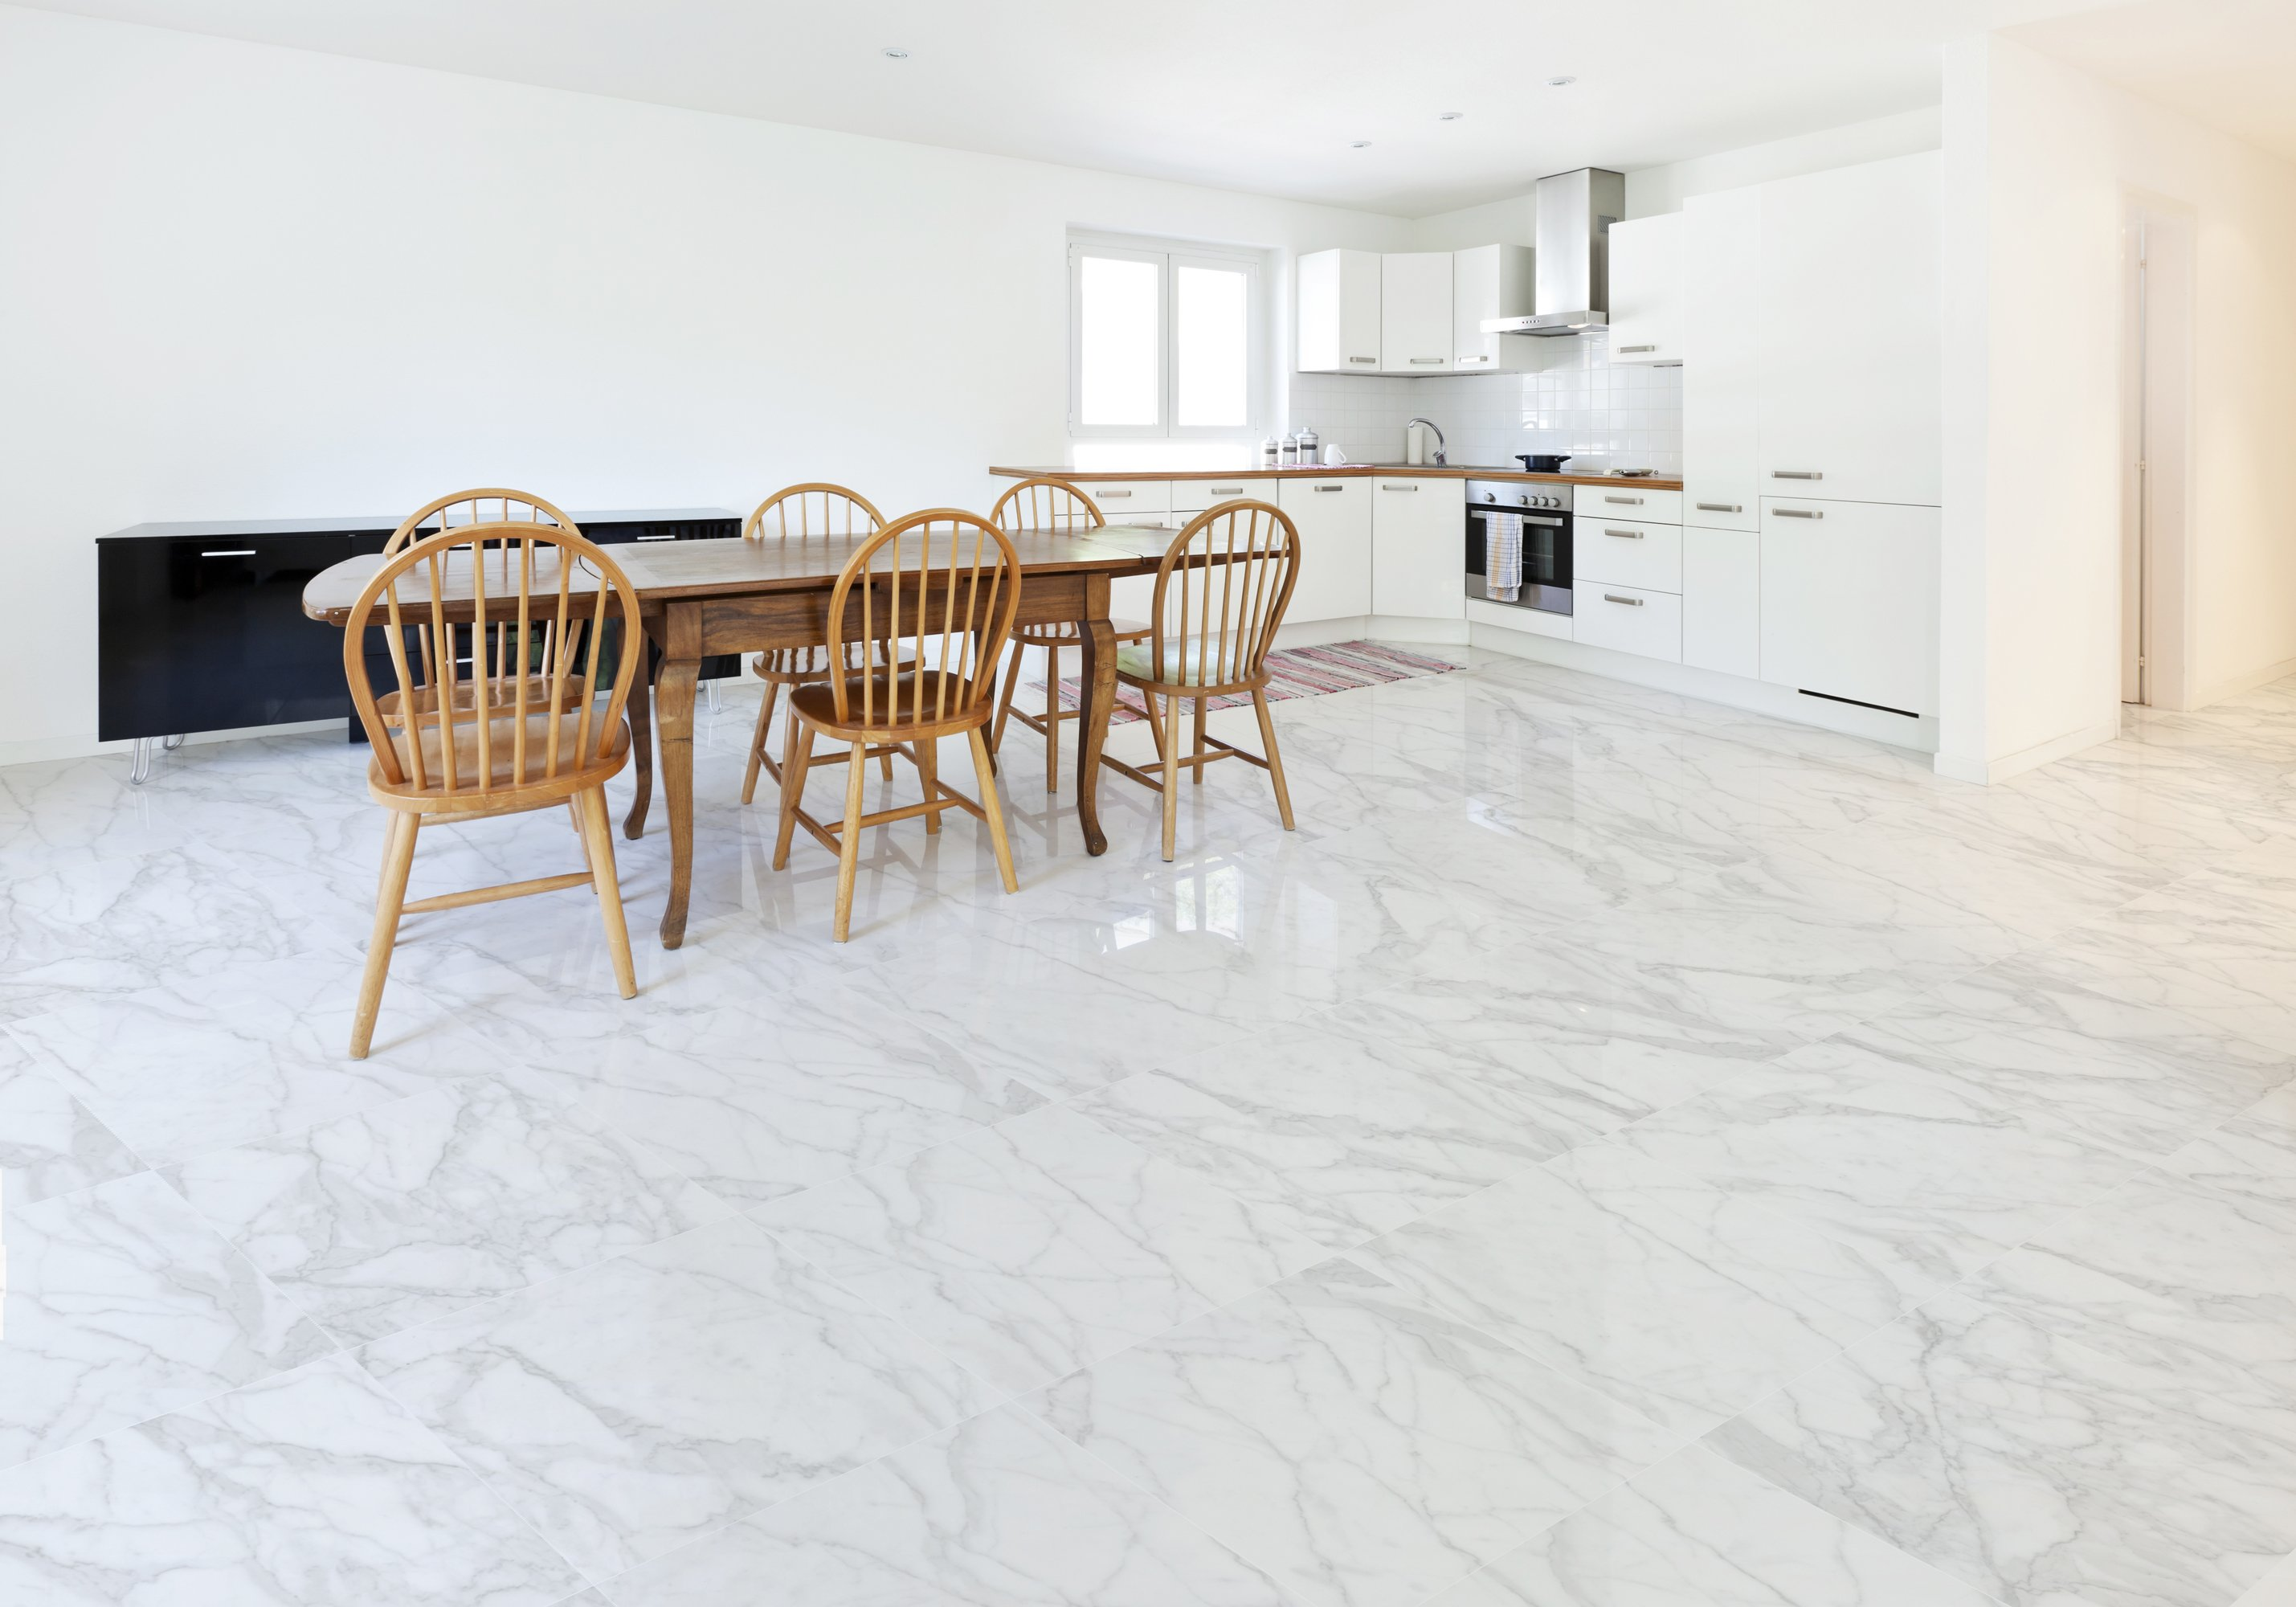 2018 kitchen flooring trends 20 flooring ideas for the perfect white tile kitchen flooring 2018 kitchen flooring trends 20 flooring ideas for the perfect kitchen get inspired dailygadgetfo Images